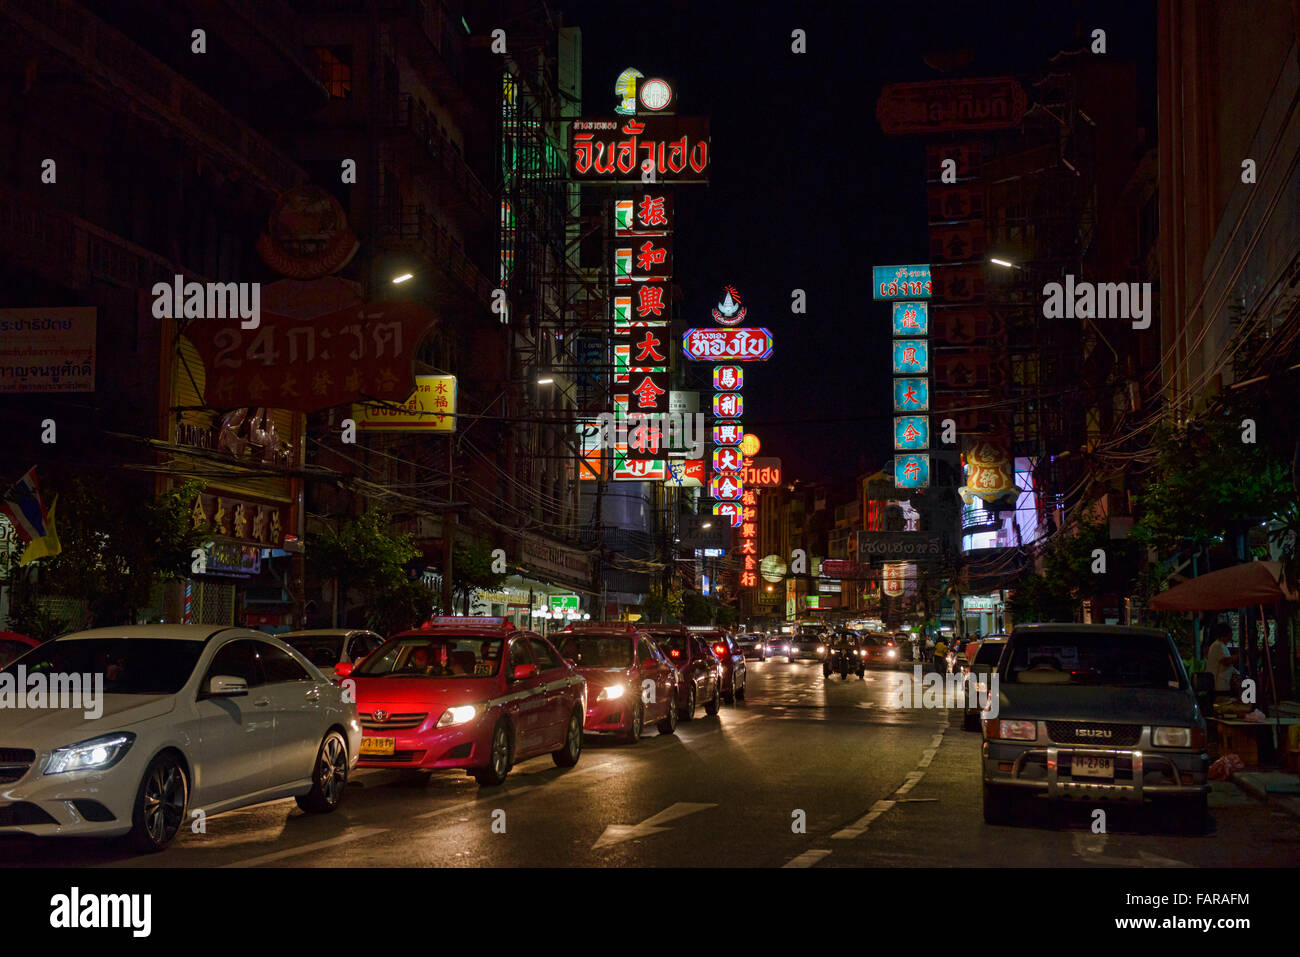 Chinatown at night, Bangkok, Thailand - Stock Image